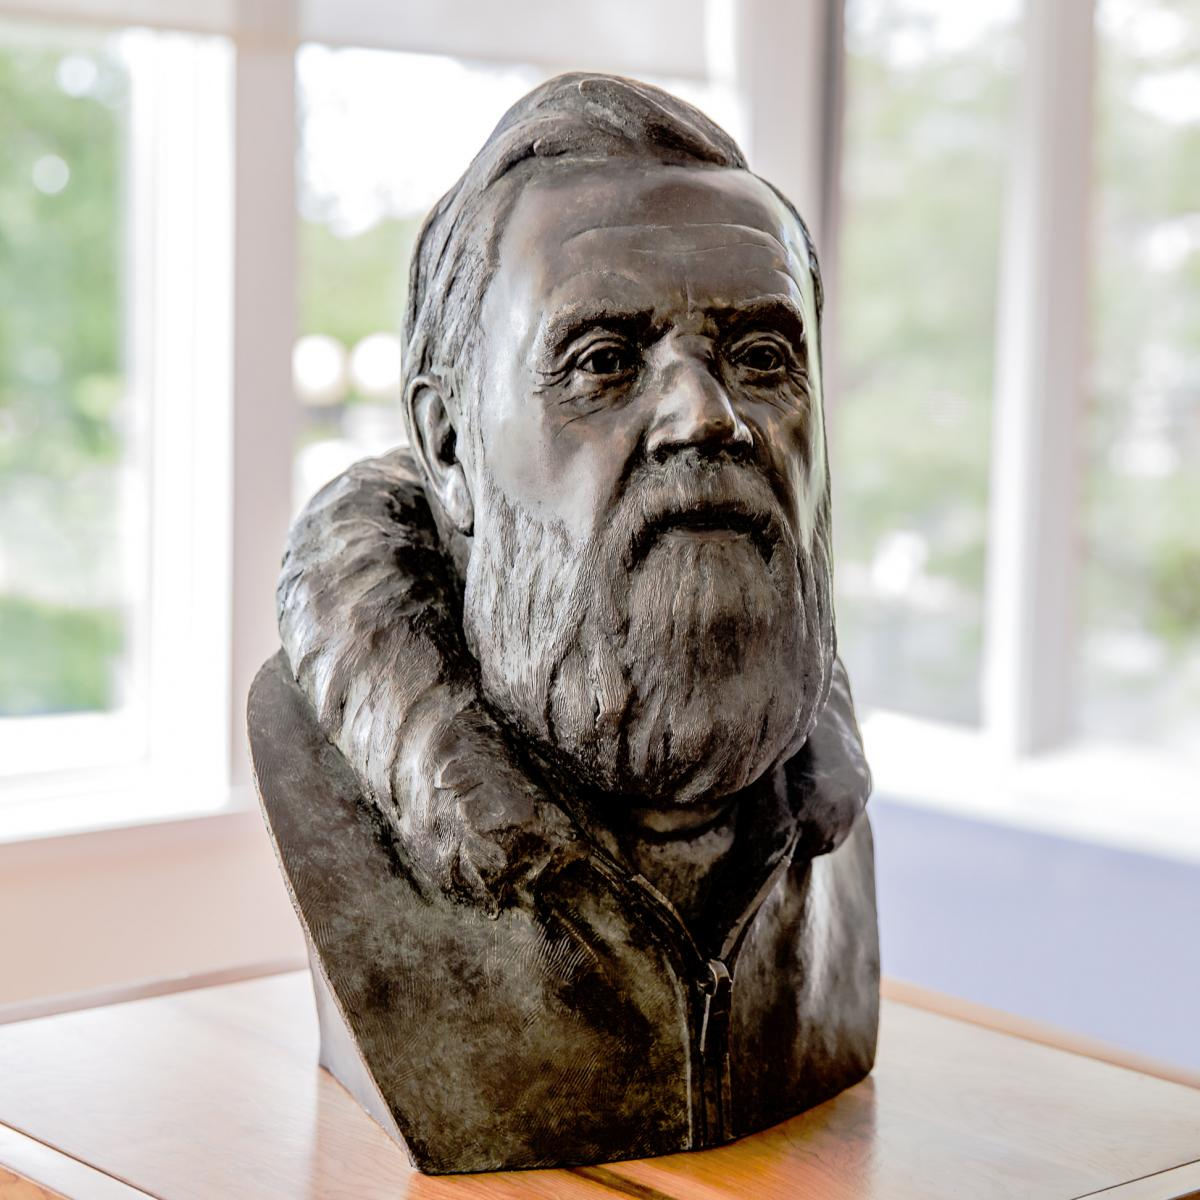 A carved bust of Farley Mowat